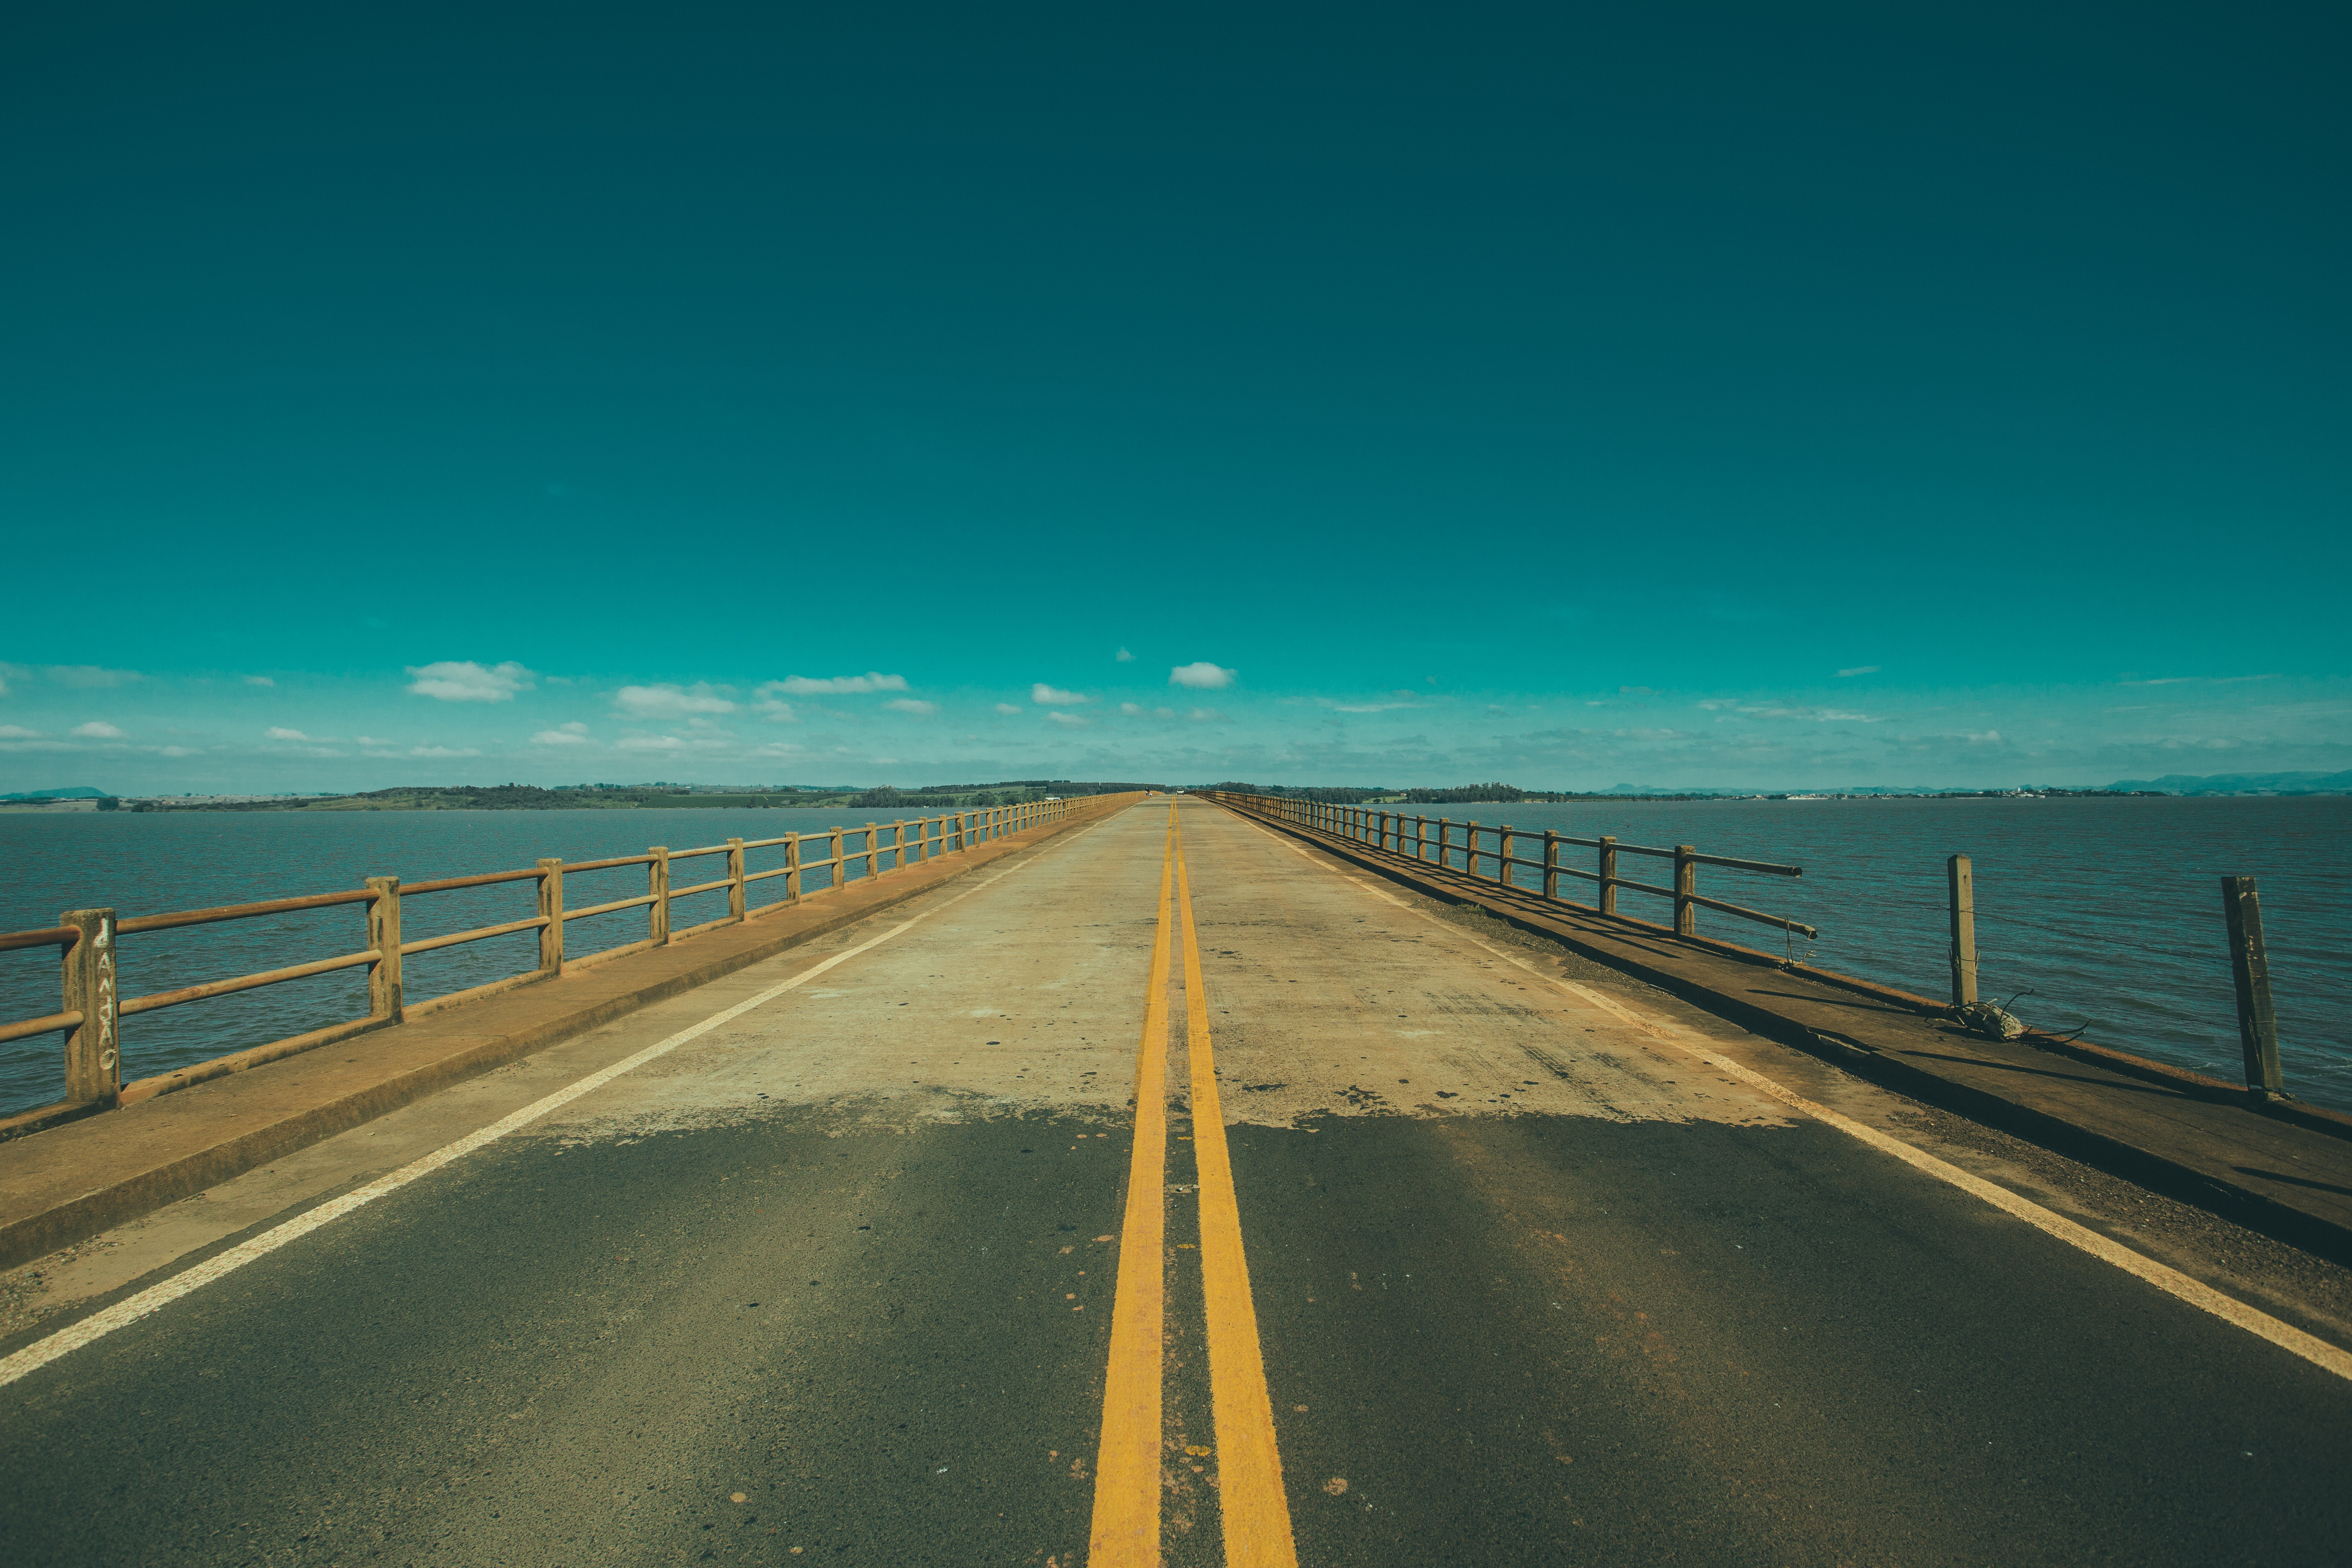 Grey Concrete Road in the Middle of the Sea, Asphalt, Bridge, Ocean, Road, HQ Photo